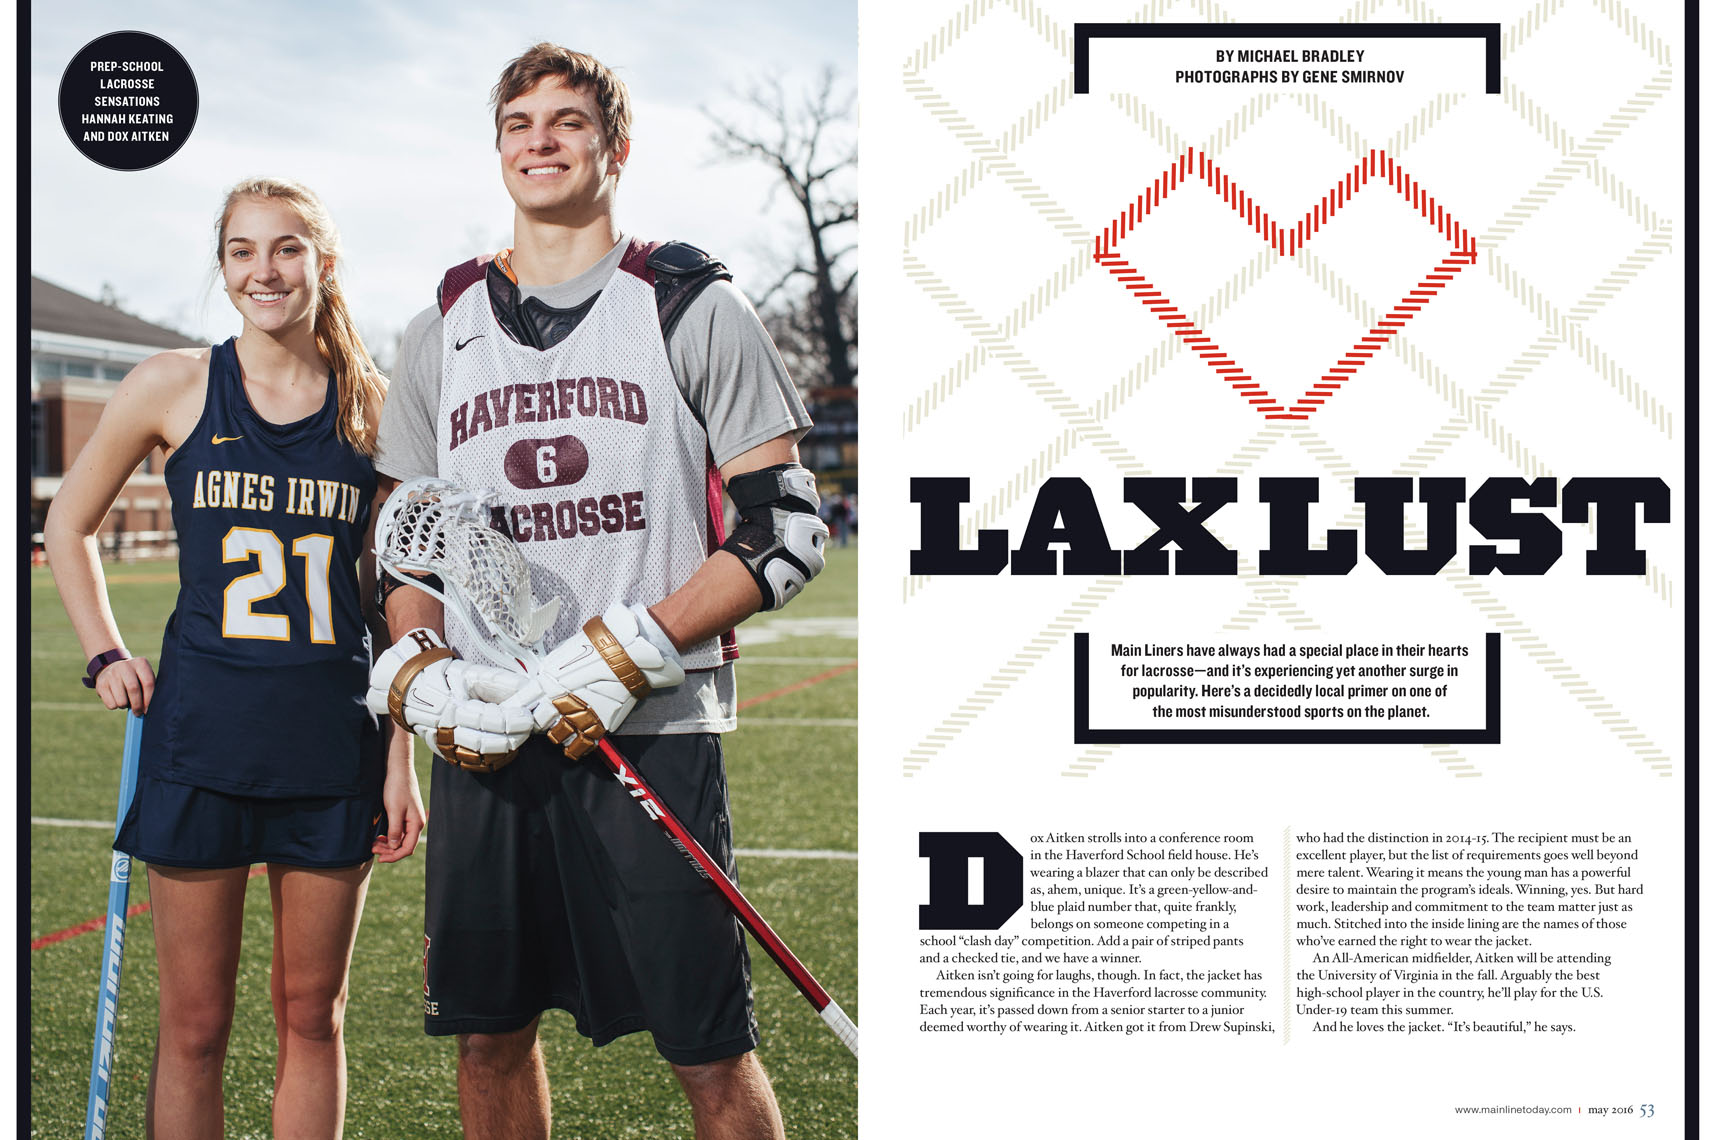 LaCrosse feature in Mainline Today